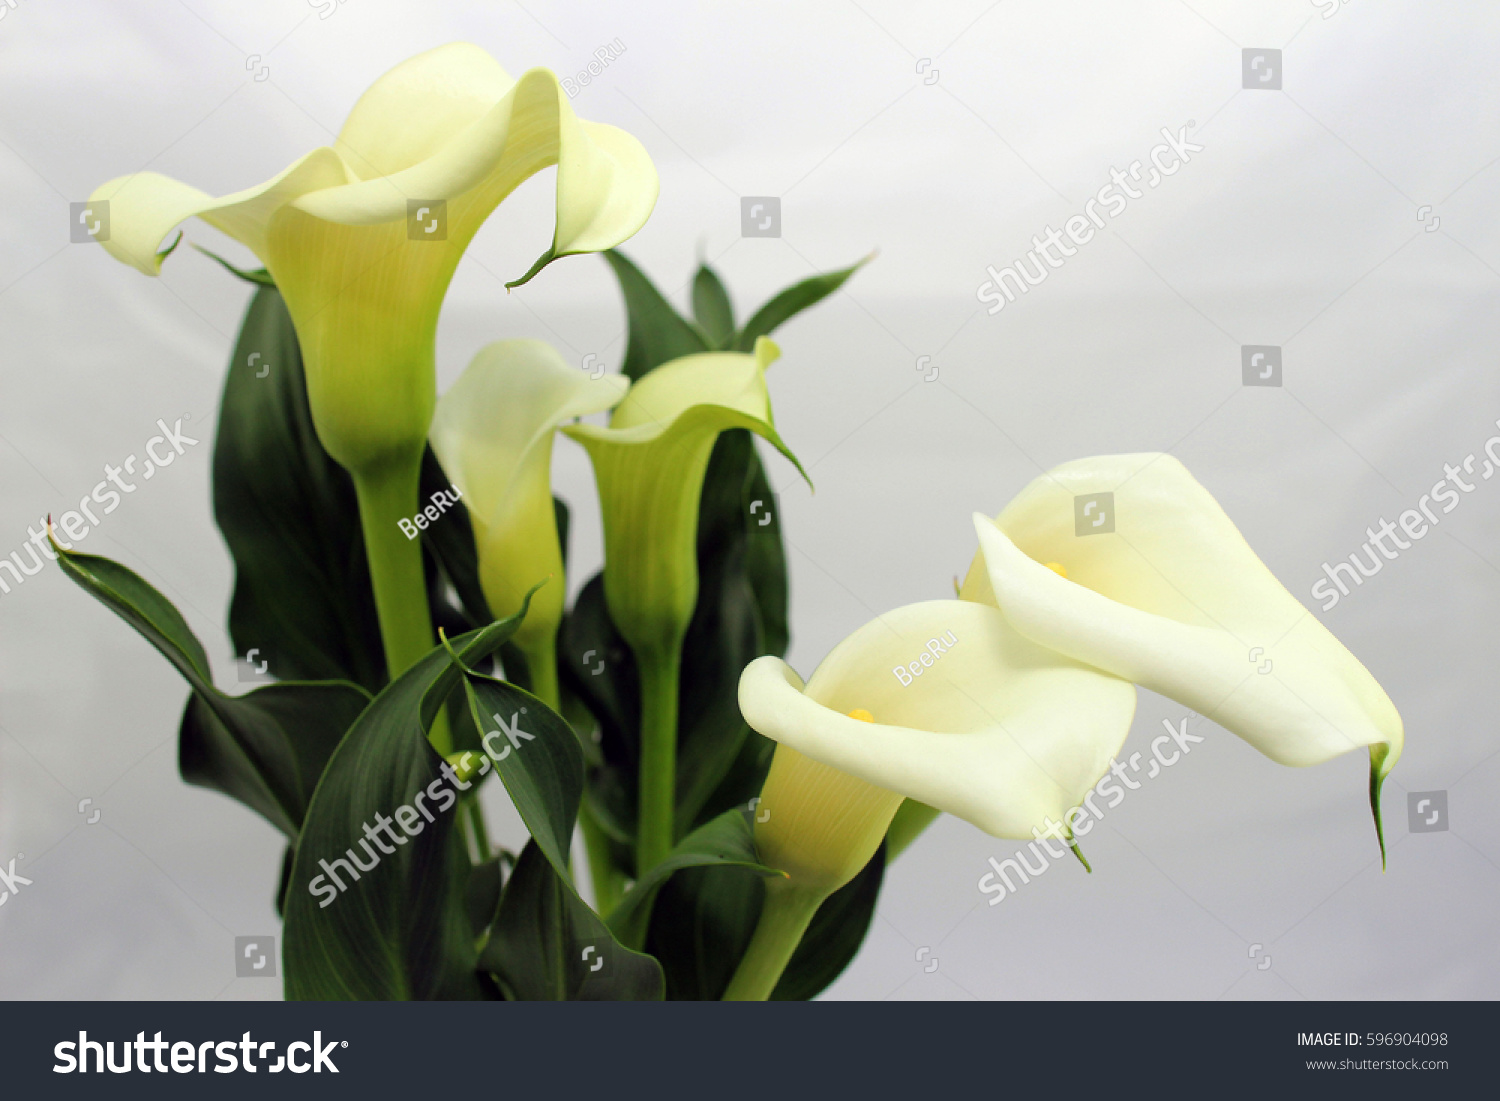 Calla lily flowers on white background stock photo royalty free calla lily flowers on white background stock photo royalty free 596904098 shutterstock izmirmasajfo